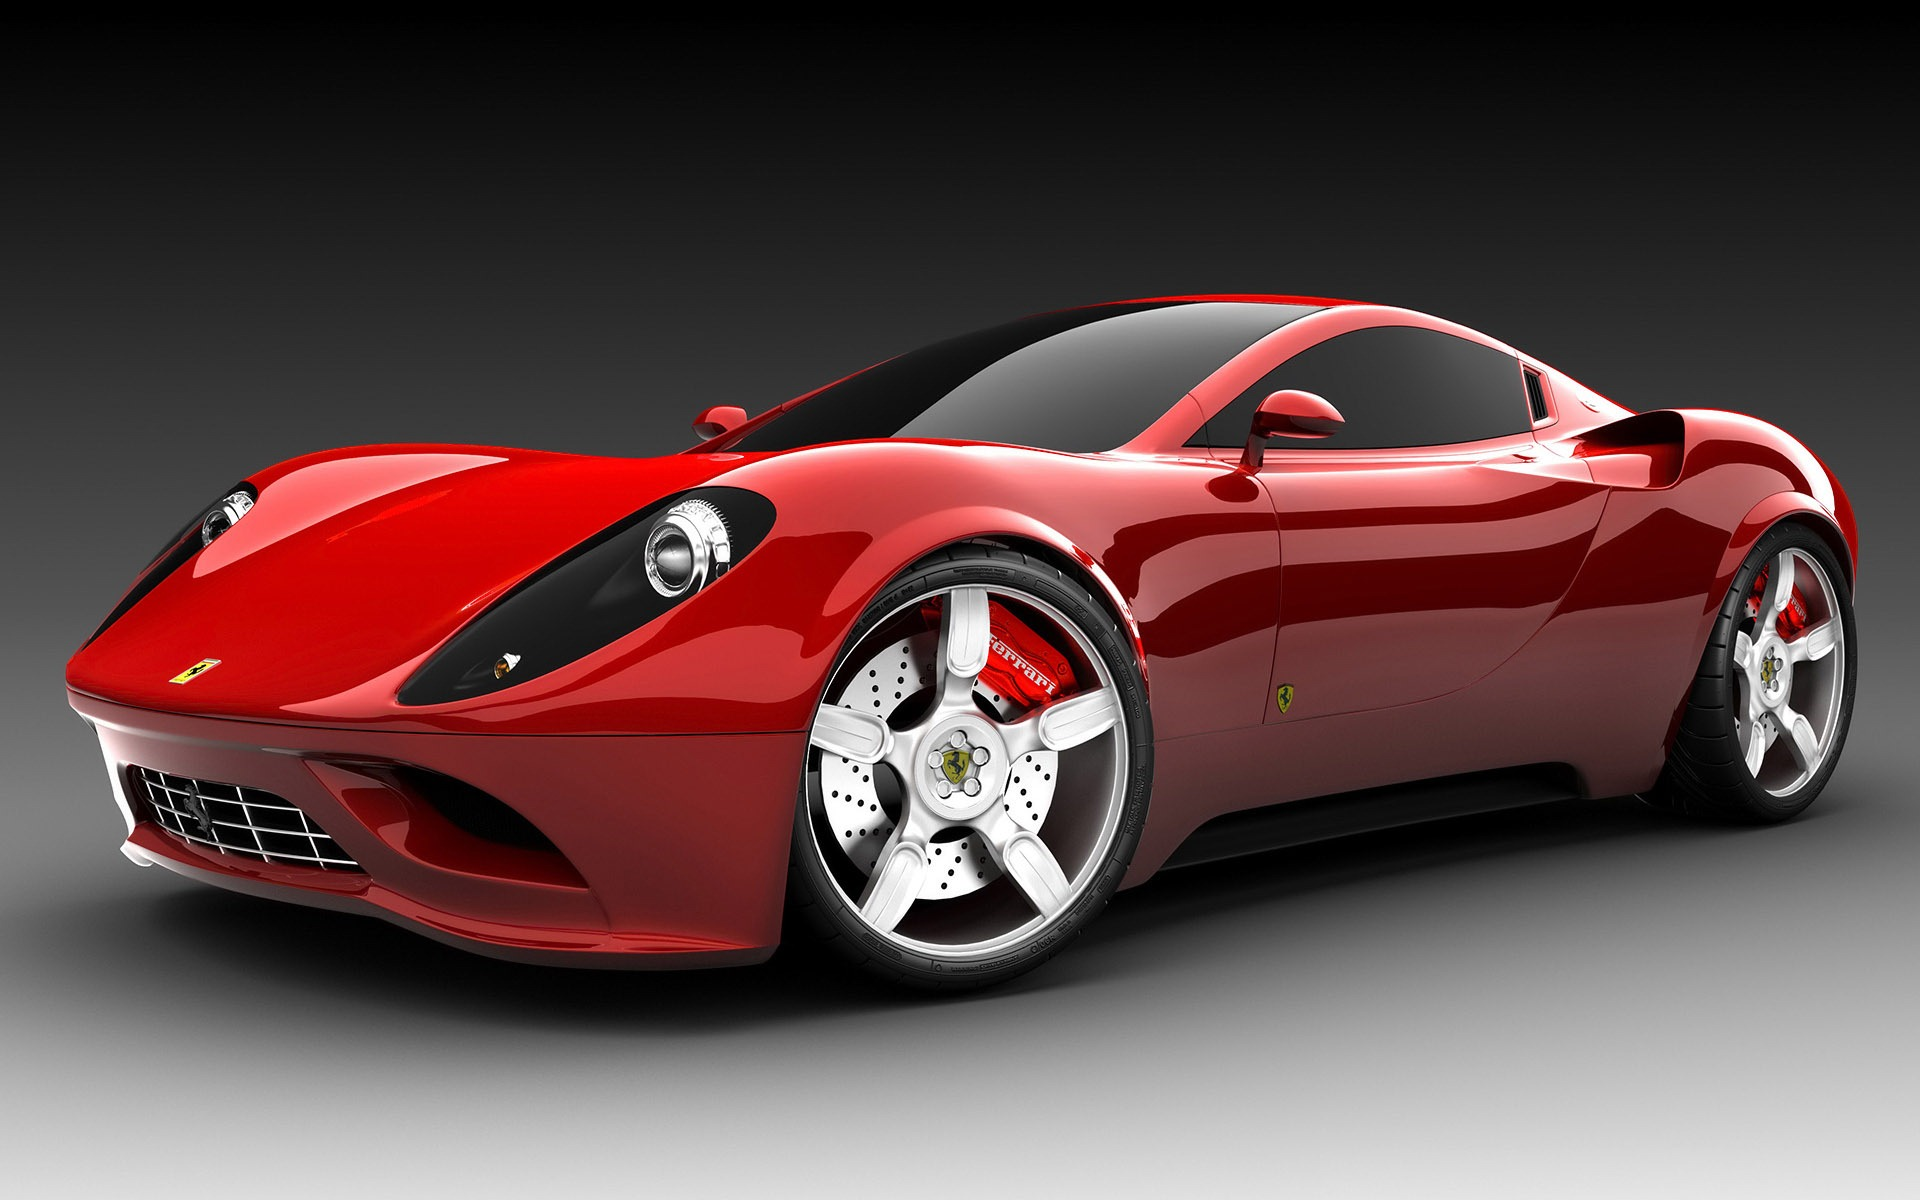 ferrari car desktop wallpaper hd desktop wallpapers free